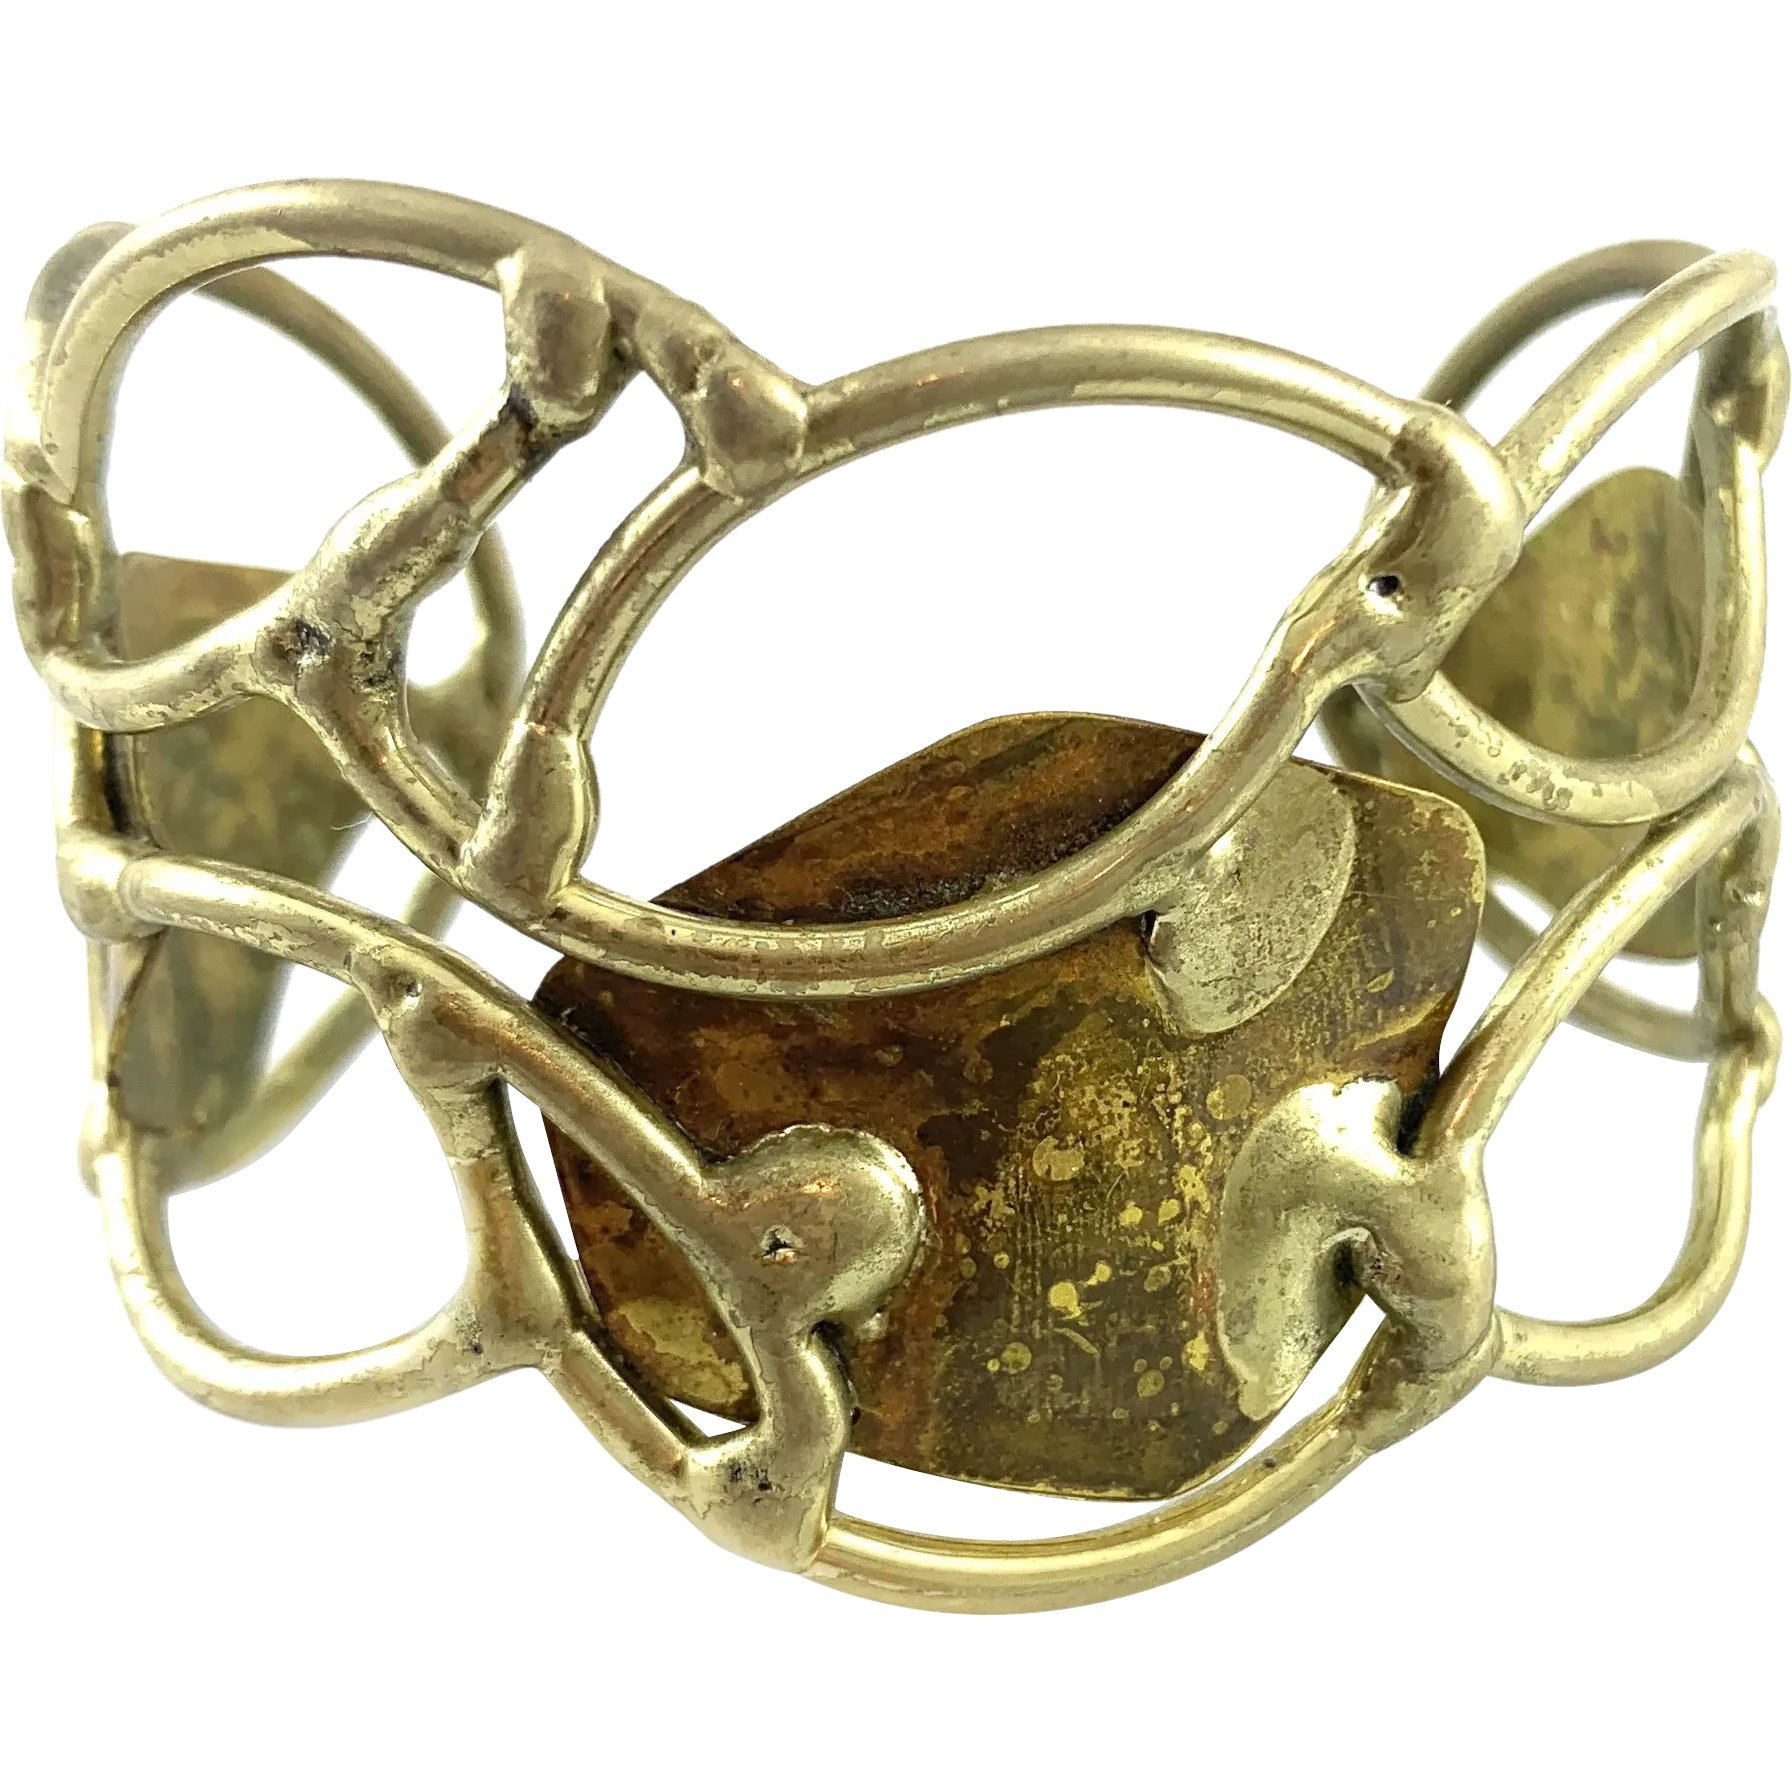 One of Kind Handmade Wide Silver and Gold Brutalist Cuff Bracelet